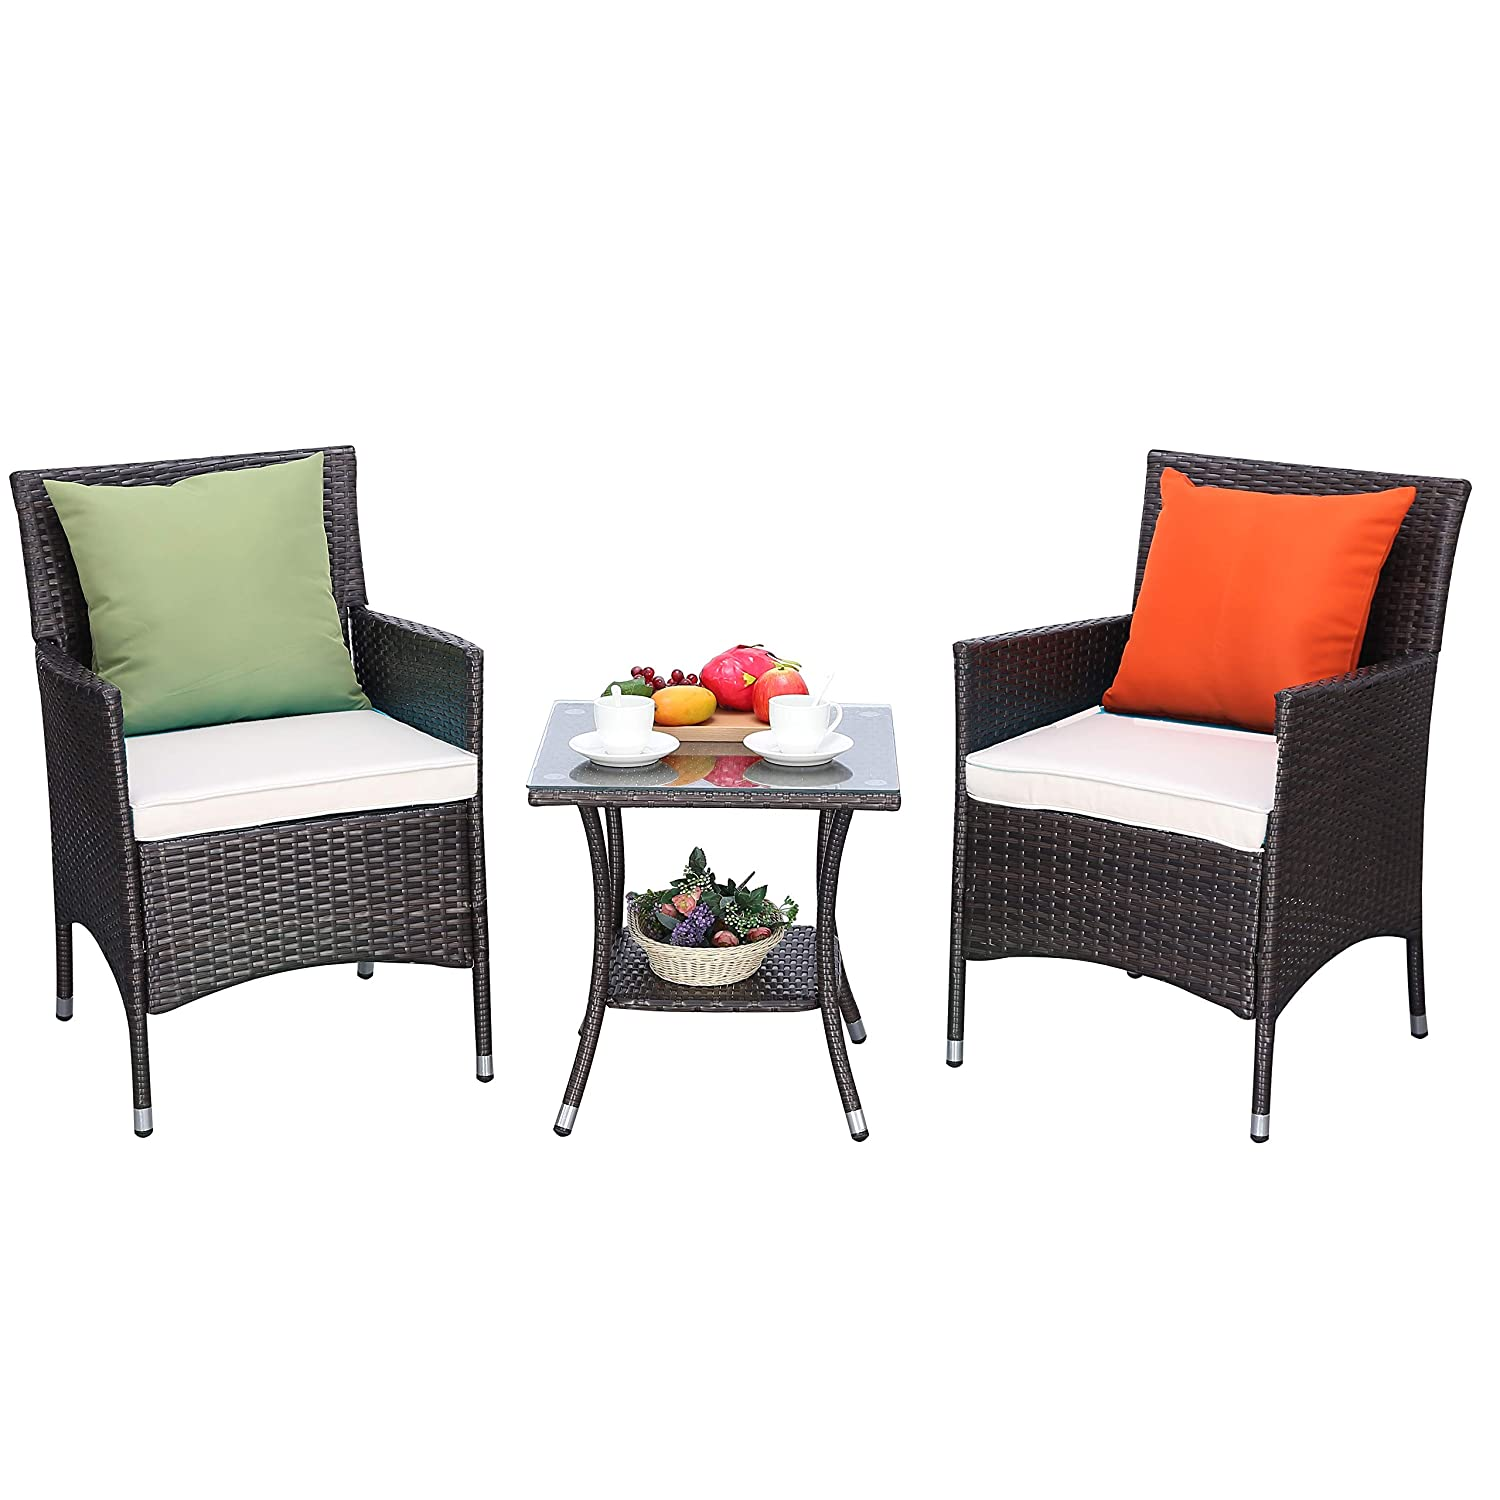 Do4U 3 Pcs Outdoor Patio